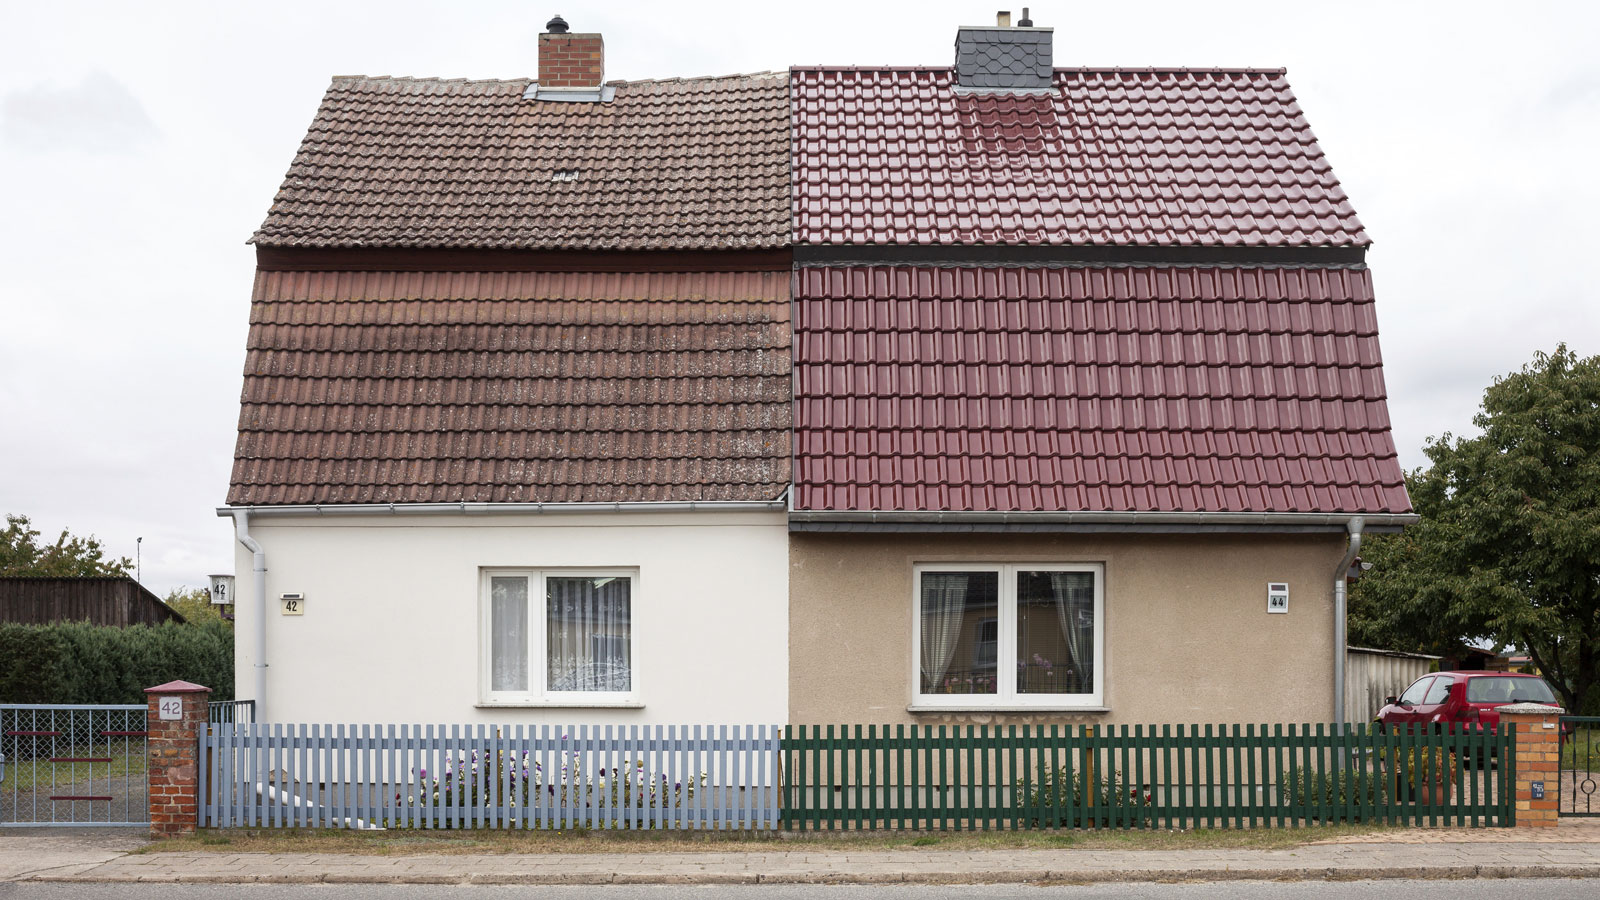 Genshagen Foundation |Call For Entries: »Shaping Cohesion – Neighbourly Relations In Europe«